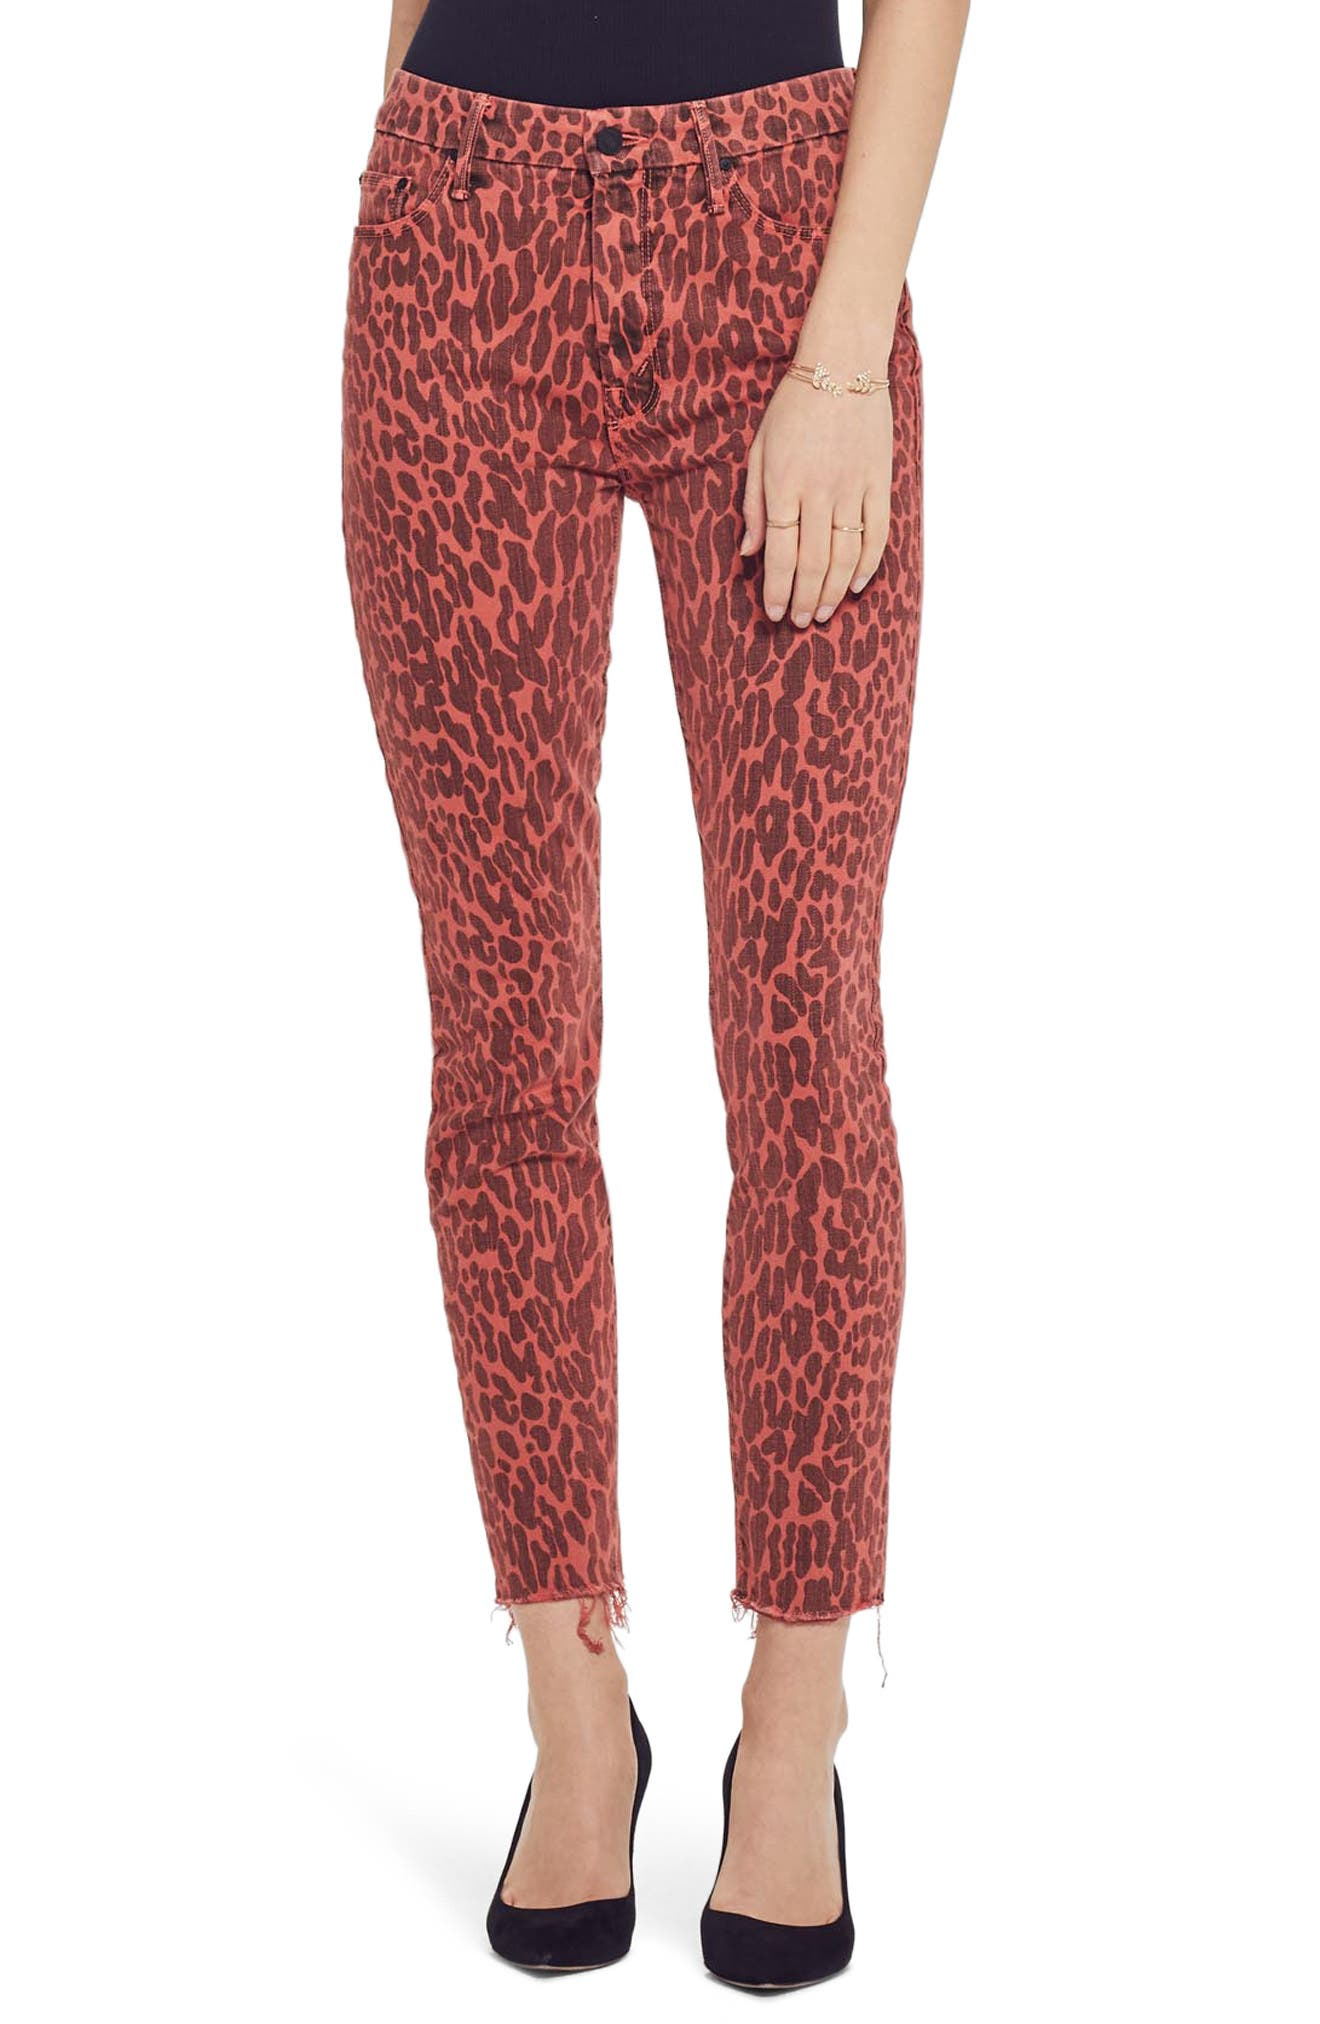 MOTHER, The Looker High Waist Fray Ankle Skinny Jeans, Main thumbnail 1, color, ANIMAL ATTRACTION